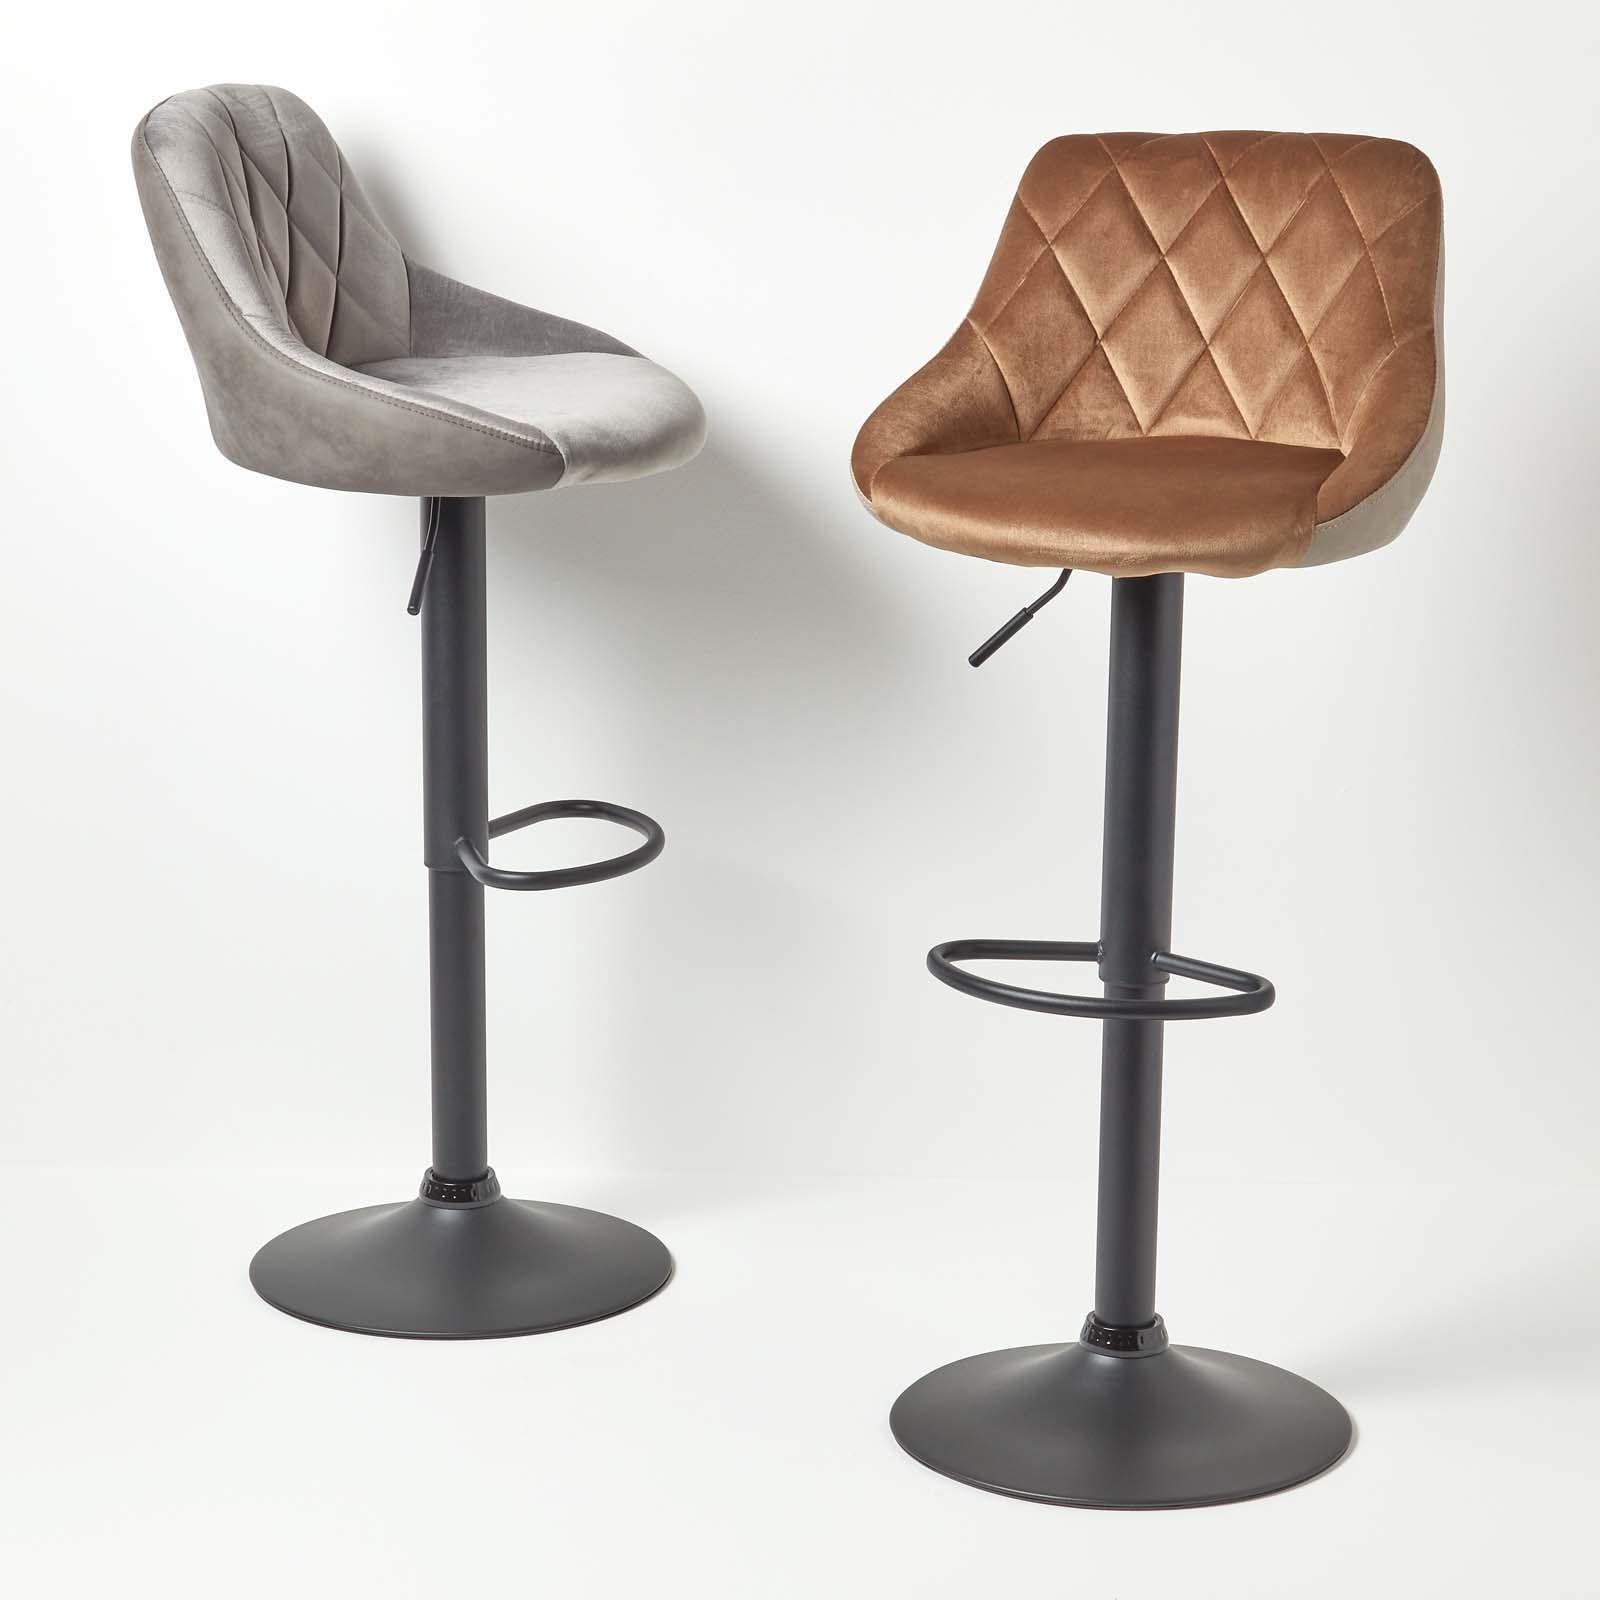 auditorium athlete Cook a meal leather swivel stool